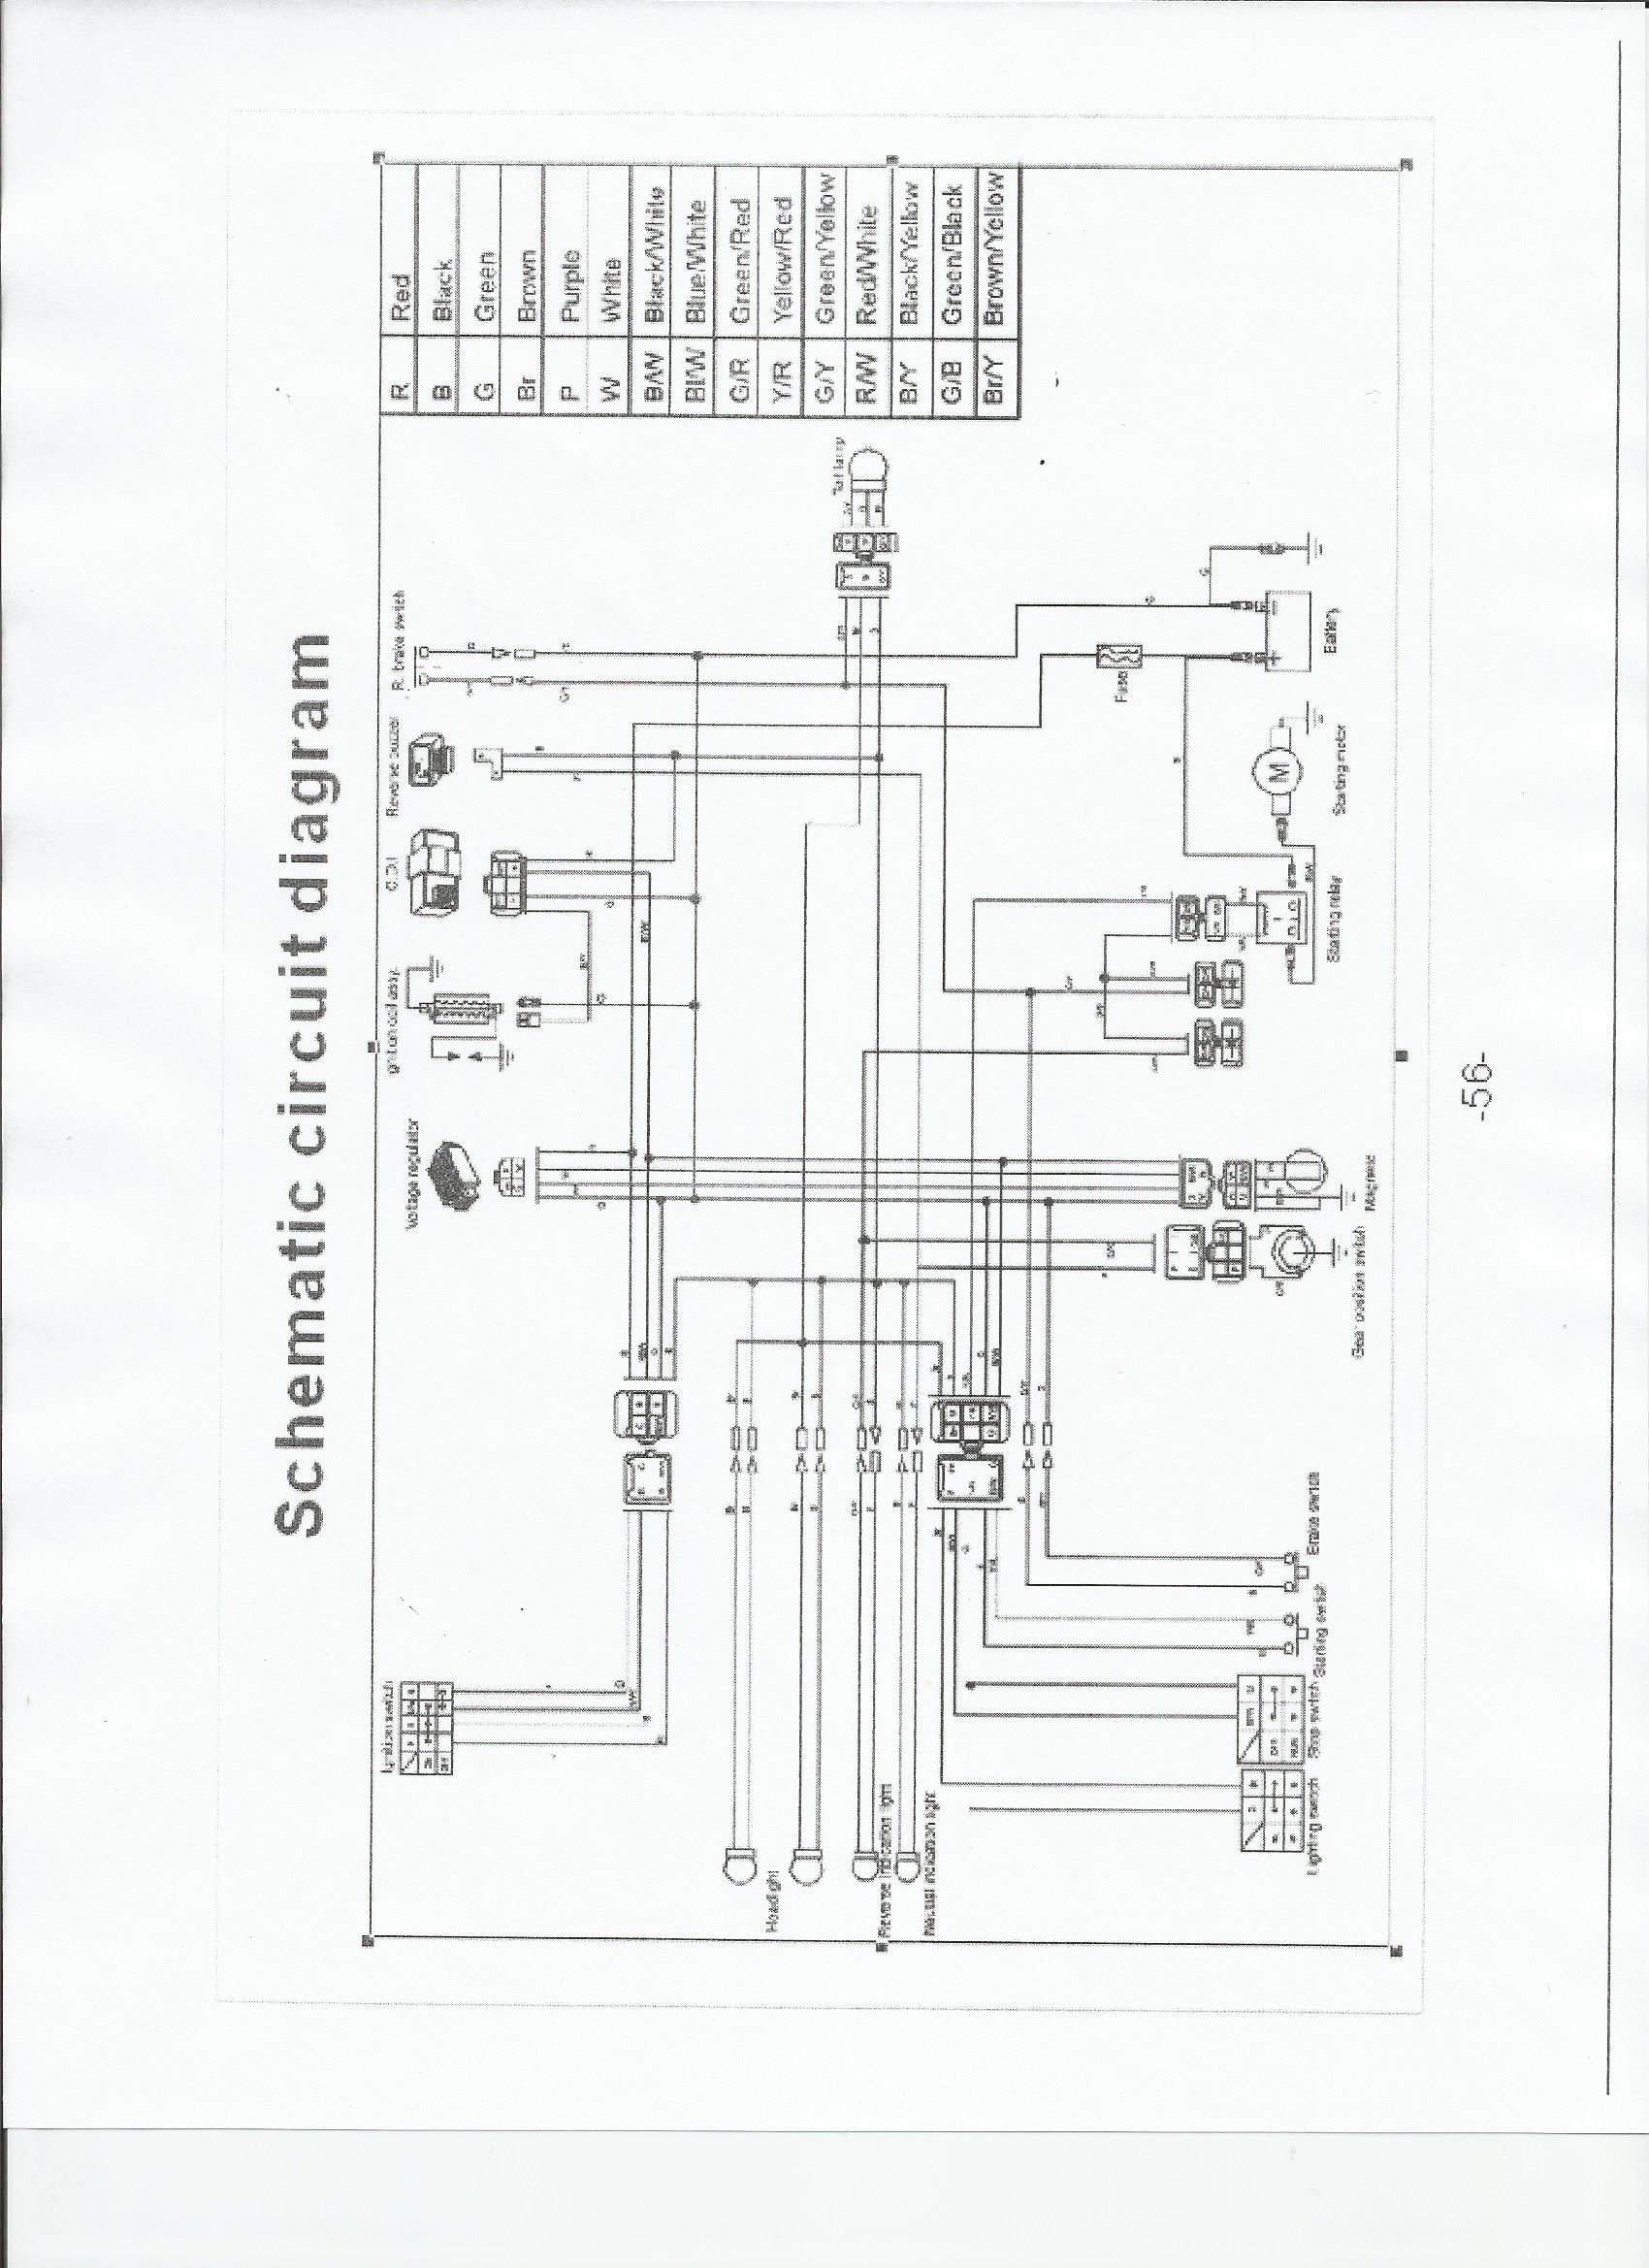 tao tao wiring schematic taotao mini and youth atv wiring schematic familygokarts support Tao Tao 50Cc Moped Wiring-Diagram at soozxer.org